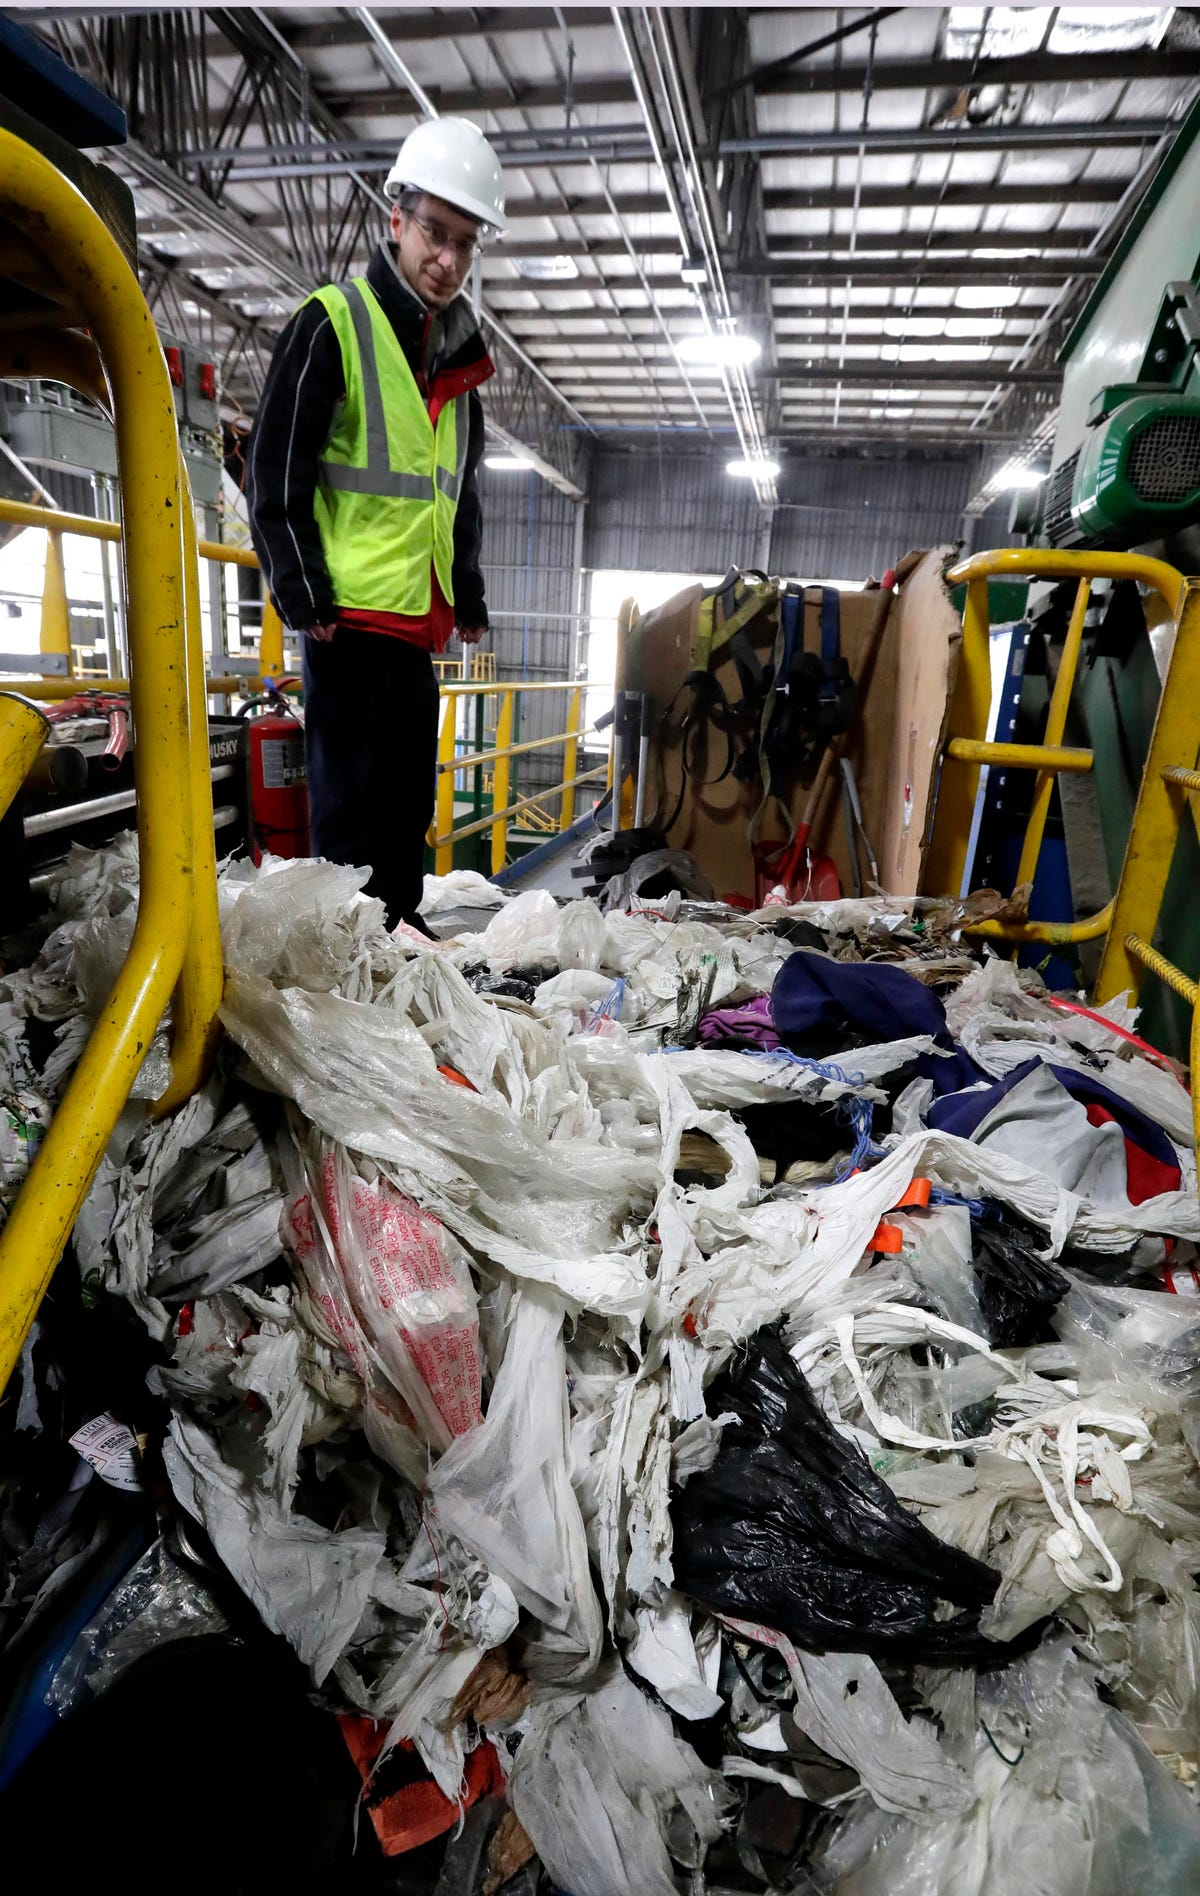 Recycling standards are getting stricter, some programs get cut